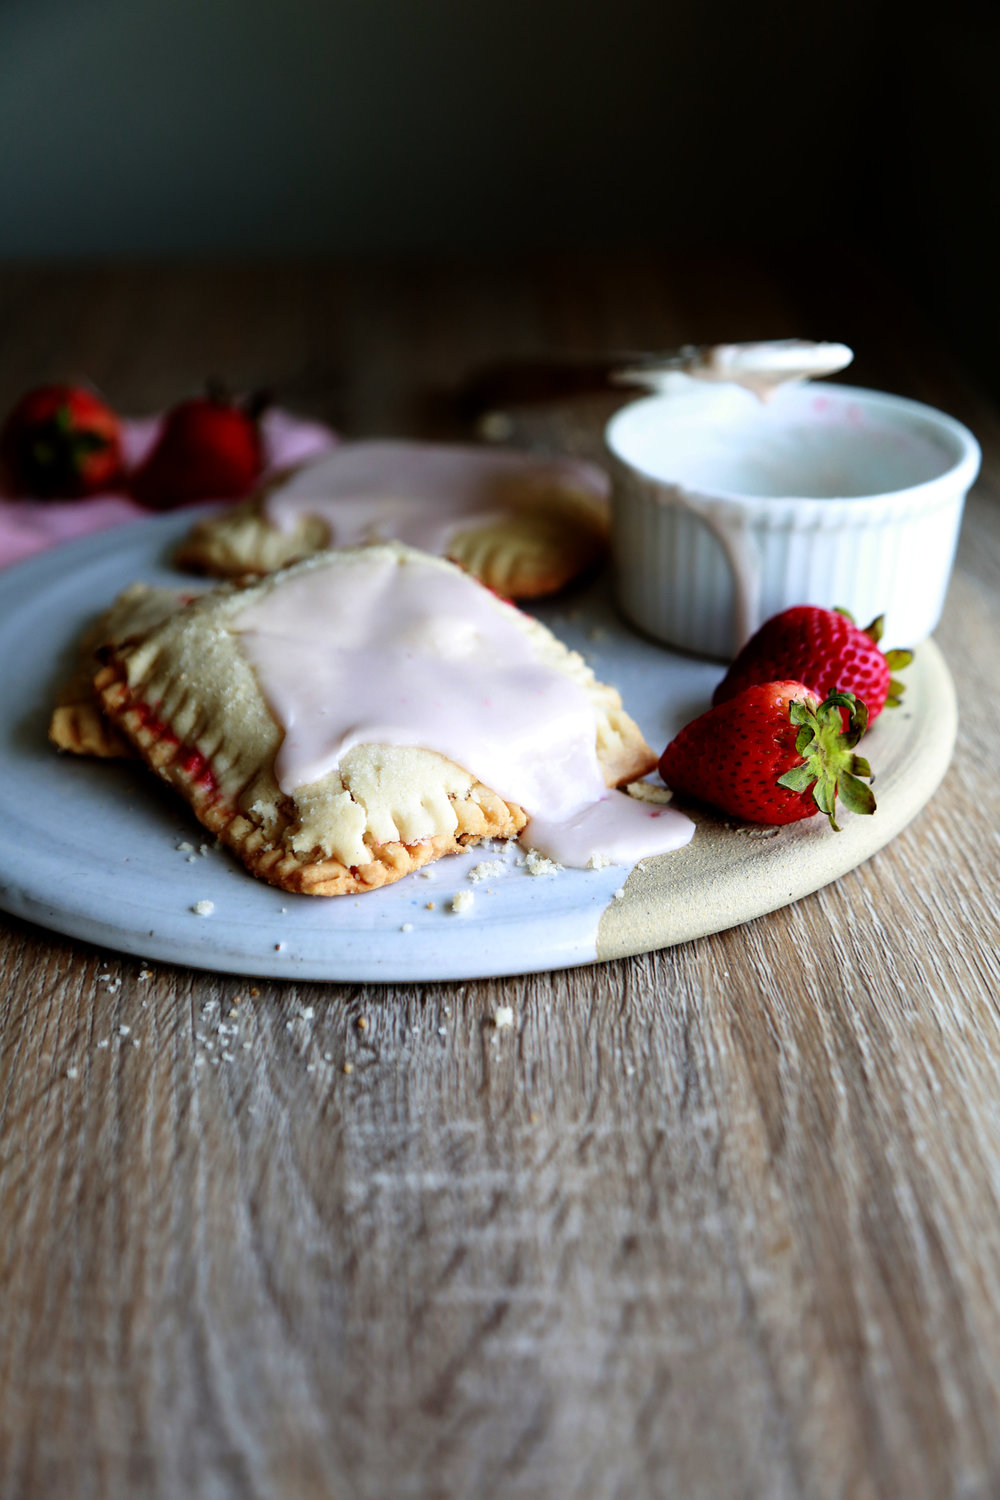 Vegan & GLuten-Free Strawberry poptart